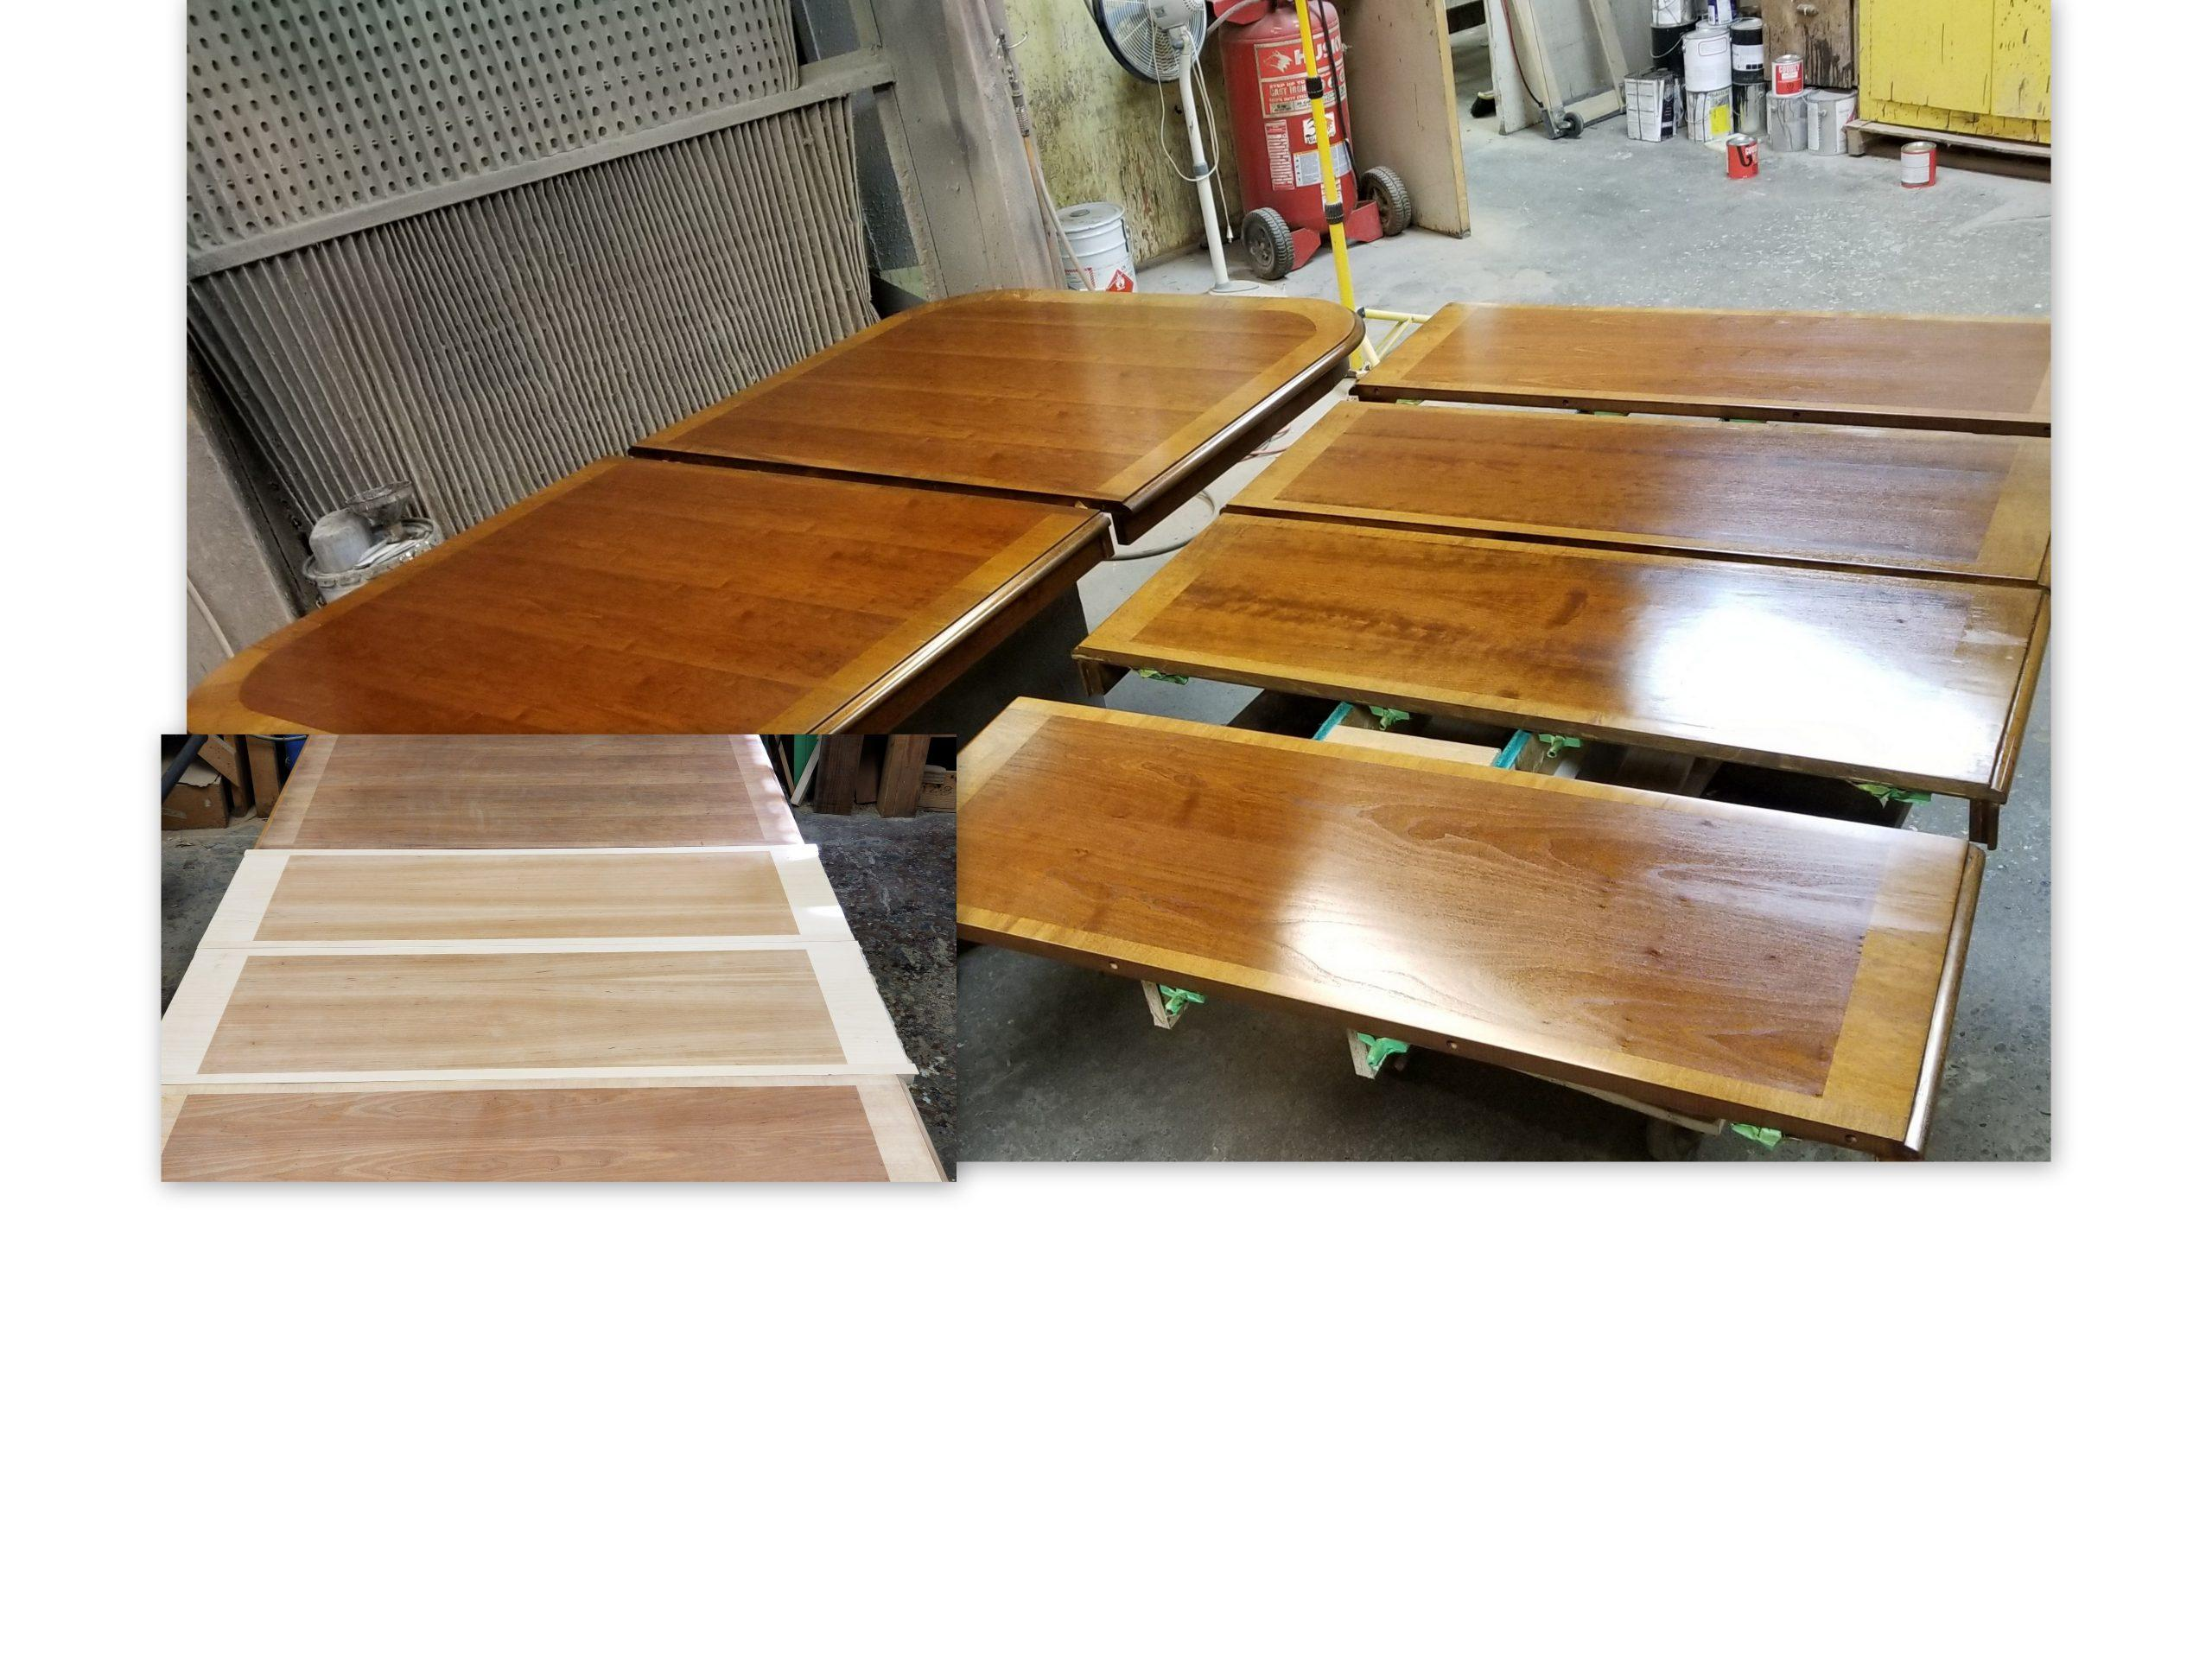 CHERRY TABLE MAKING 2 MATCHING LEAFS